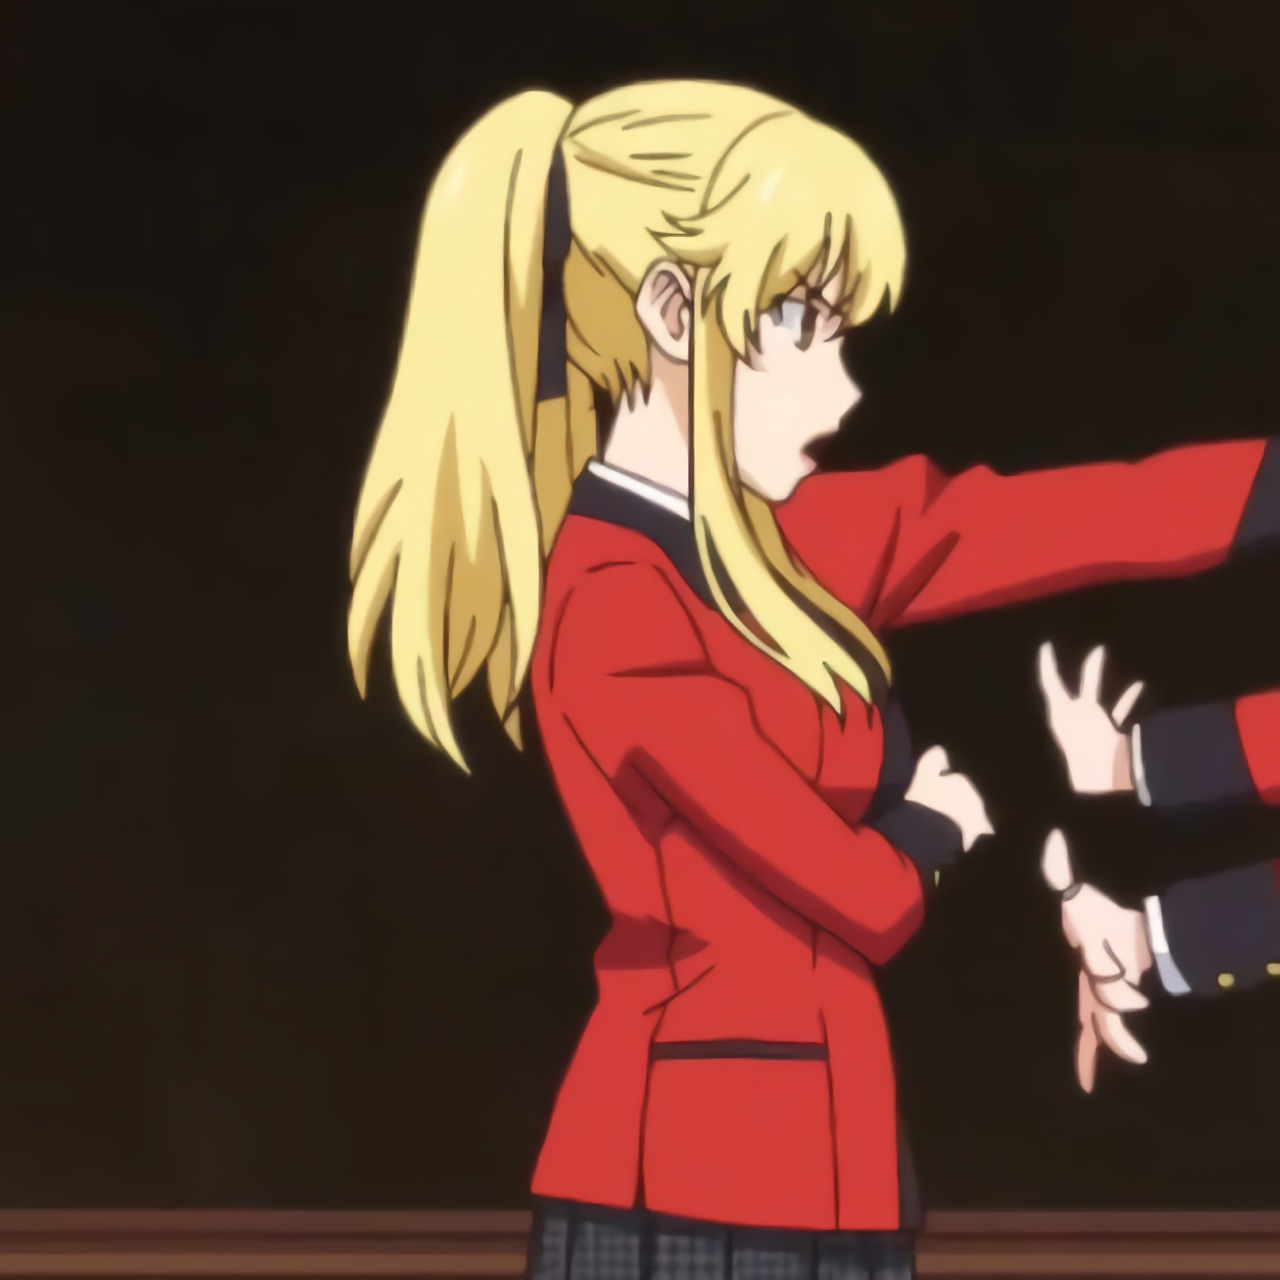 09/09/2021· your kakegurui matching pfp yumeko and midari images are geared up in this web. 677 Images About Kakegurui On We Heart It See More About Kakegurui Anime And Anime Girl